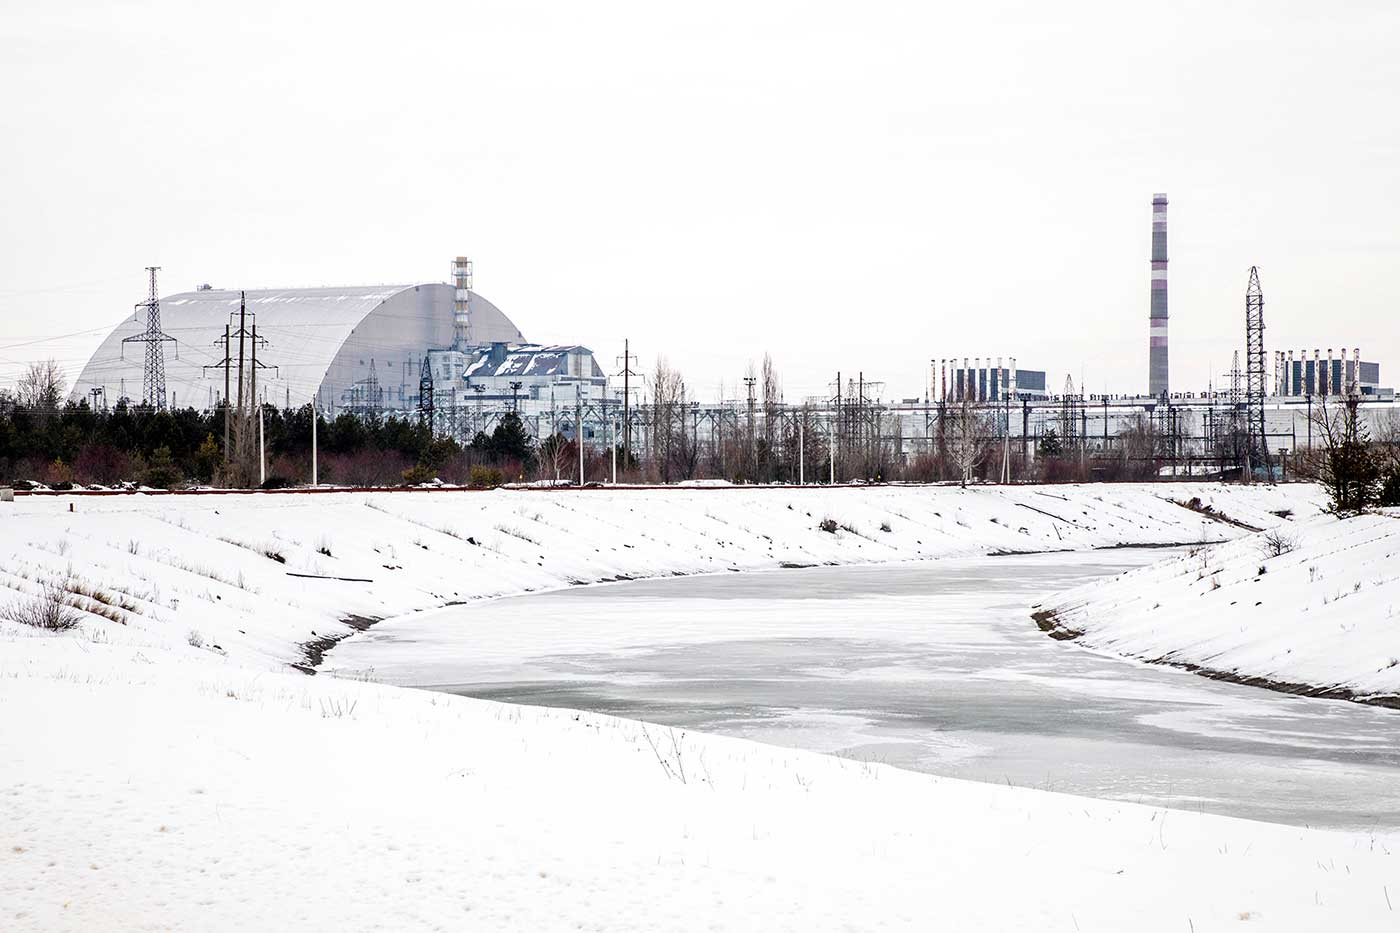 Chernobyl Nuclear Power Plant in winter. Visible from right to left are Reactor Blocks 1 and 2, the chimney and grey roof of Reactor Block 3, and finally, the New Safe Confinement structure encasing the destroyed Reactor Block 4.